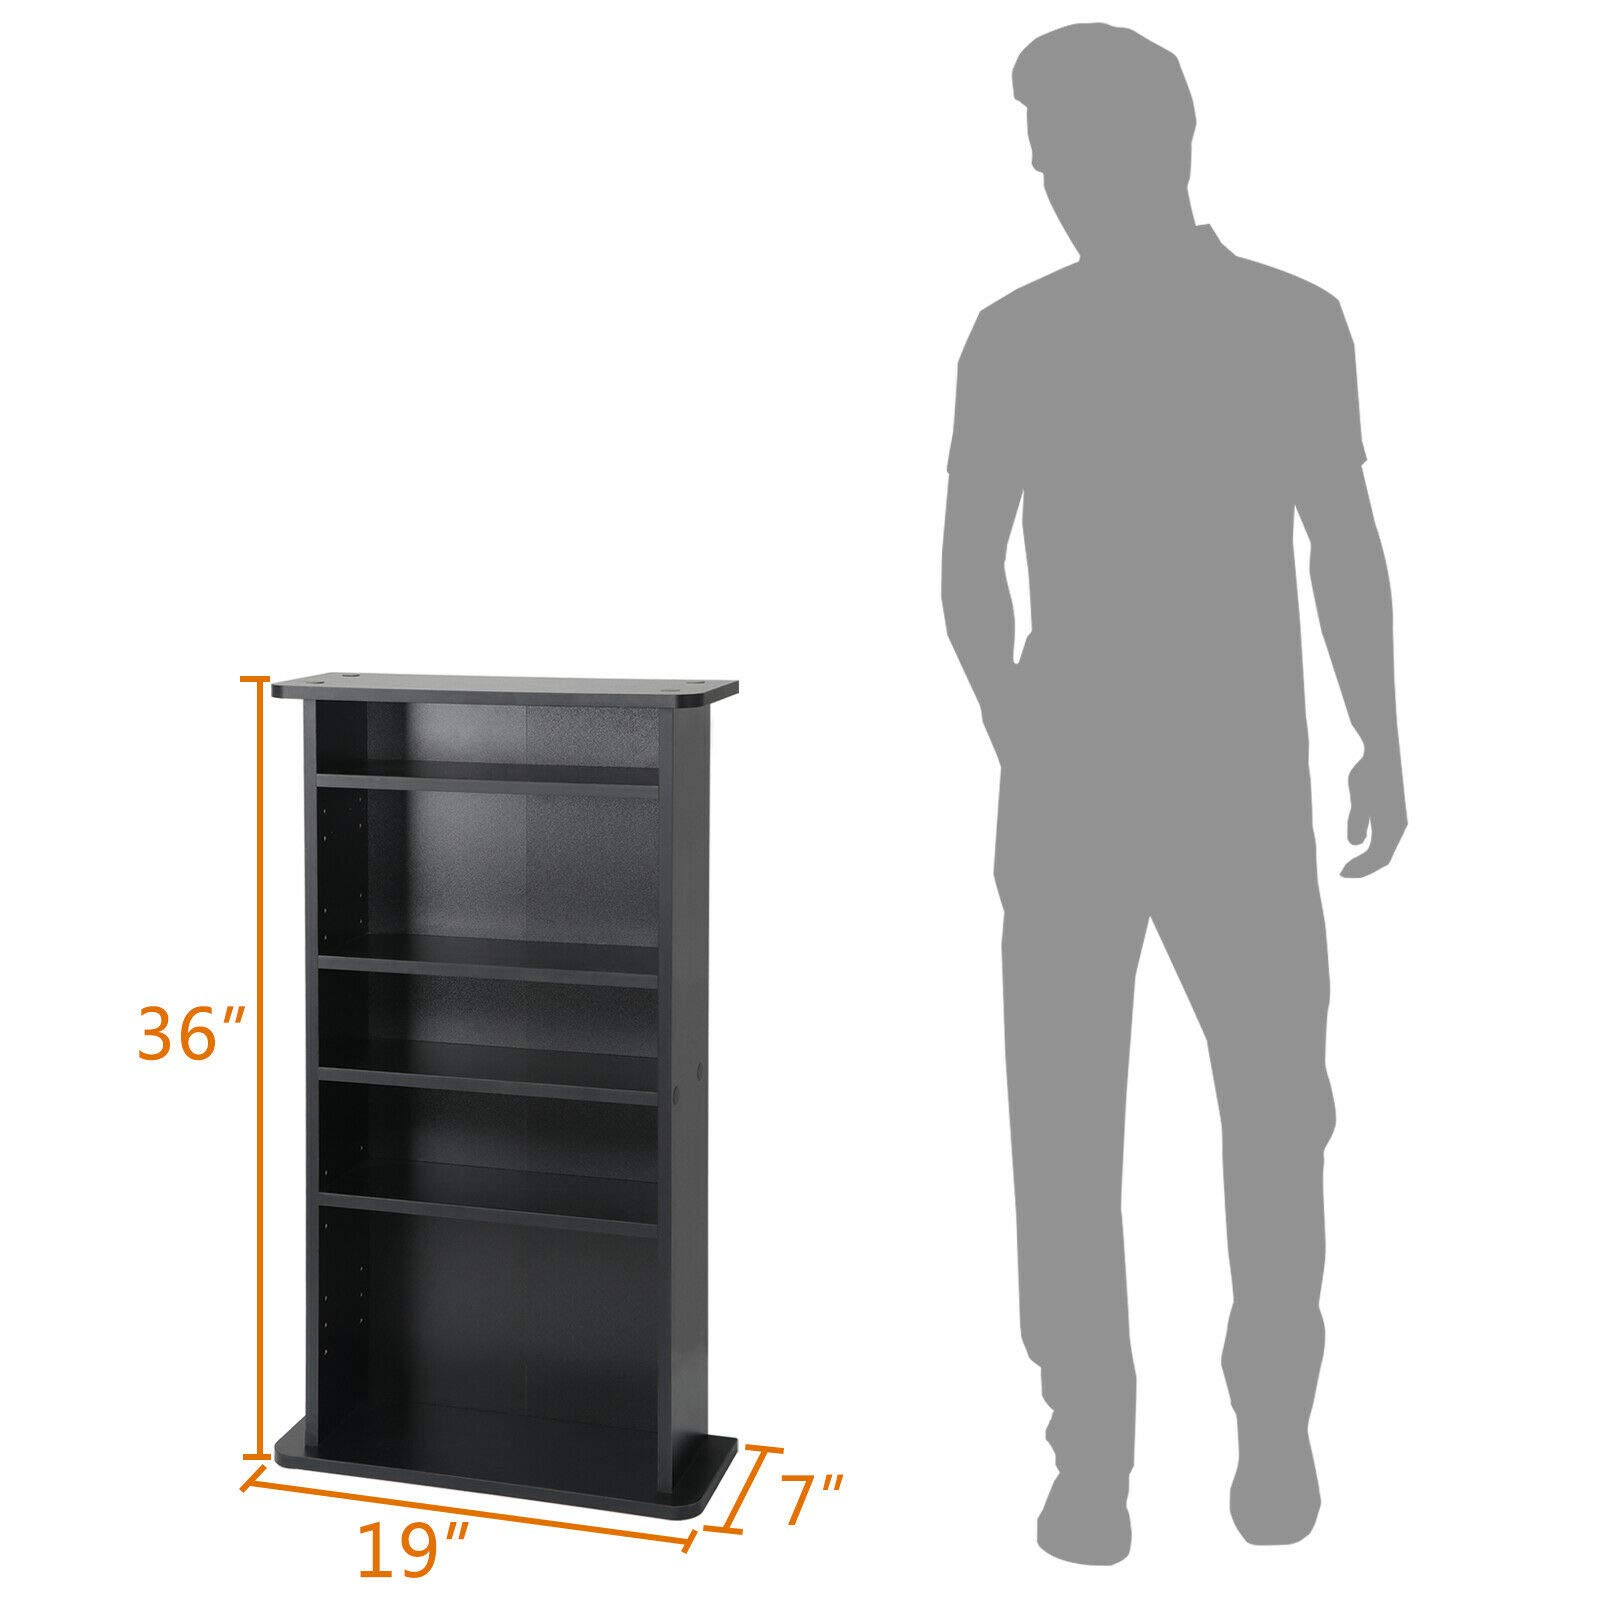 PloybeeShop Height DVD CD This Media Cabinet Storage Adjustable 5 Layers Stand Free Standing 36'' by PloybeeShop (Image #2)